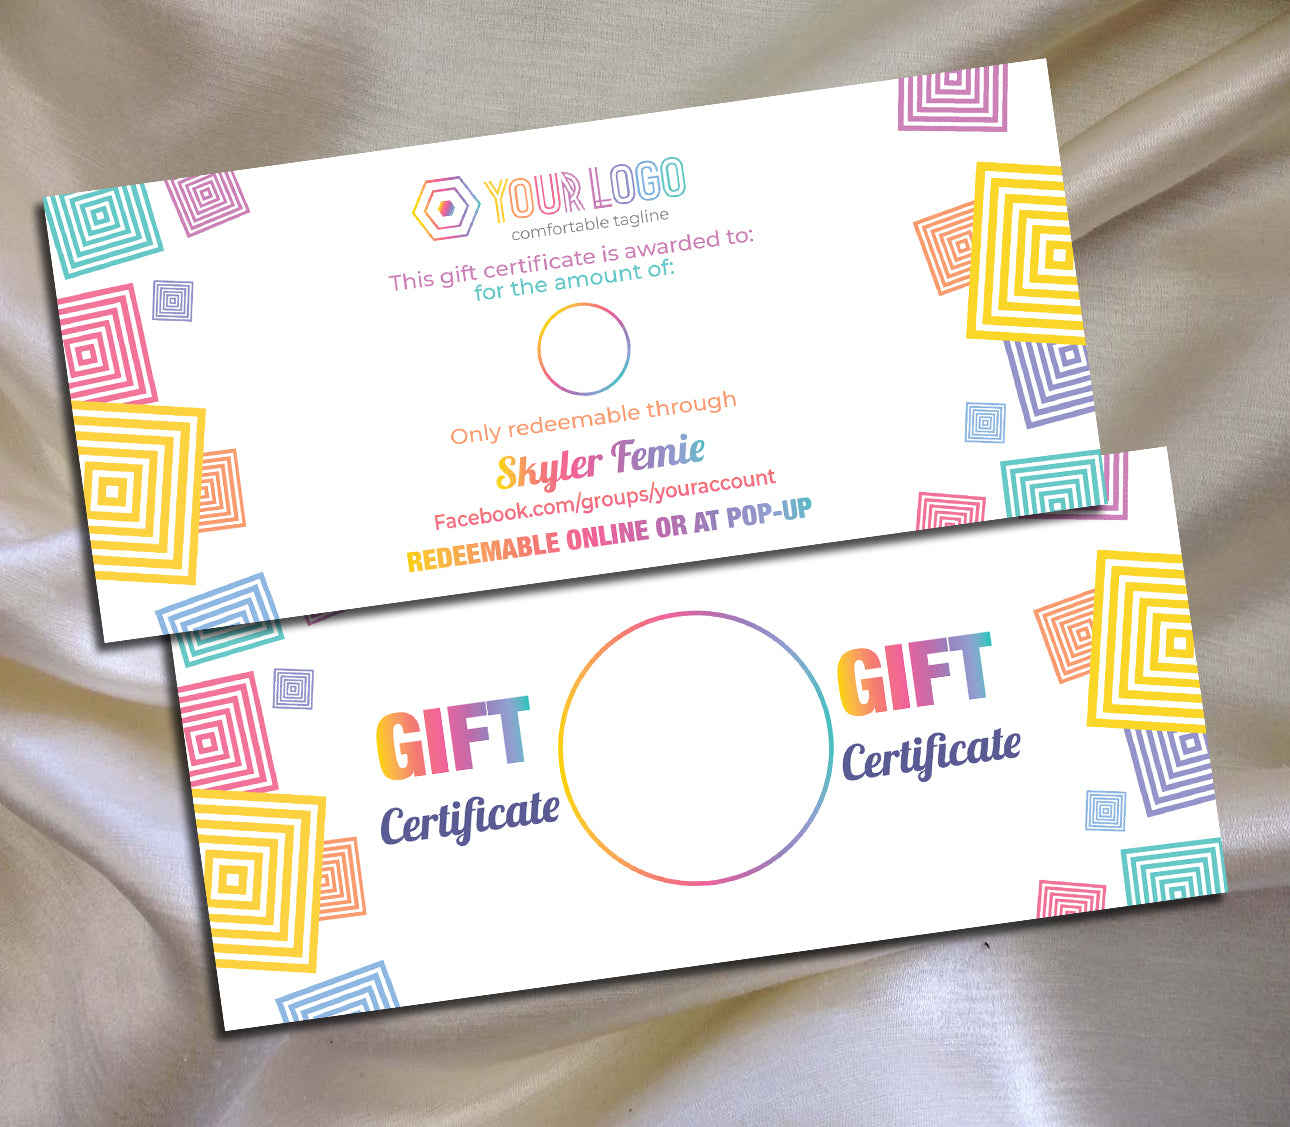 Marketing Kitcustom Gift Certificate Logo Llr Color Branding